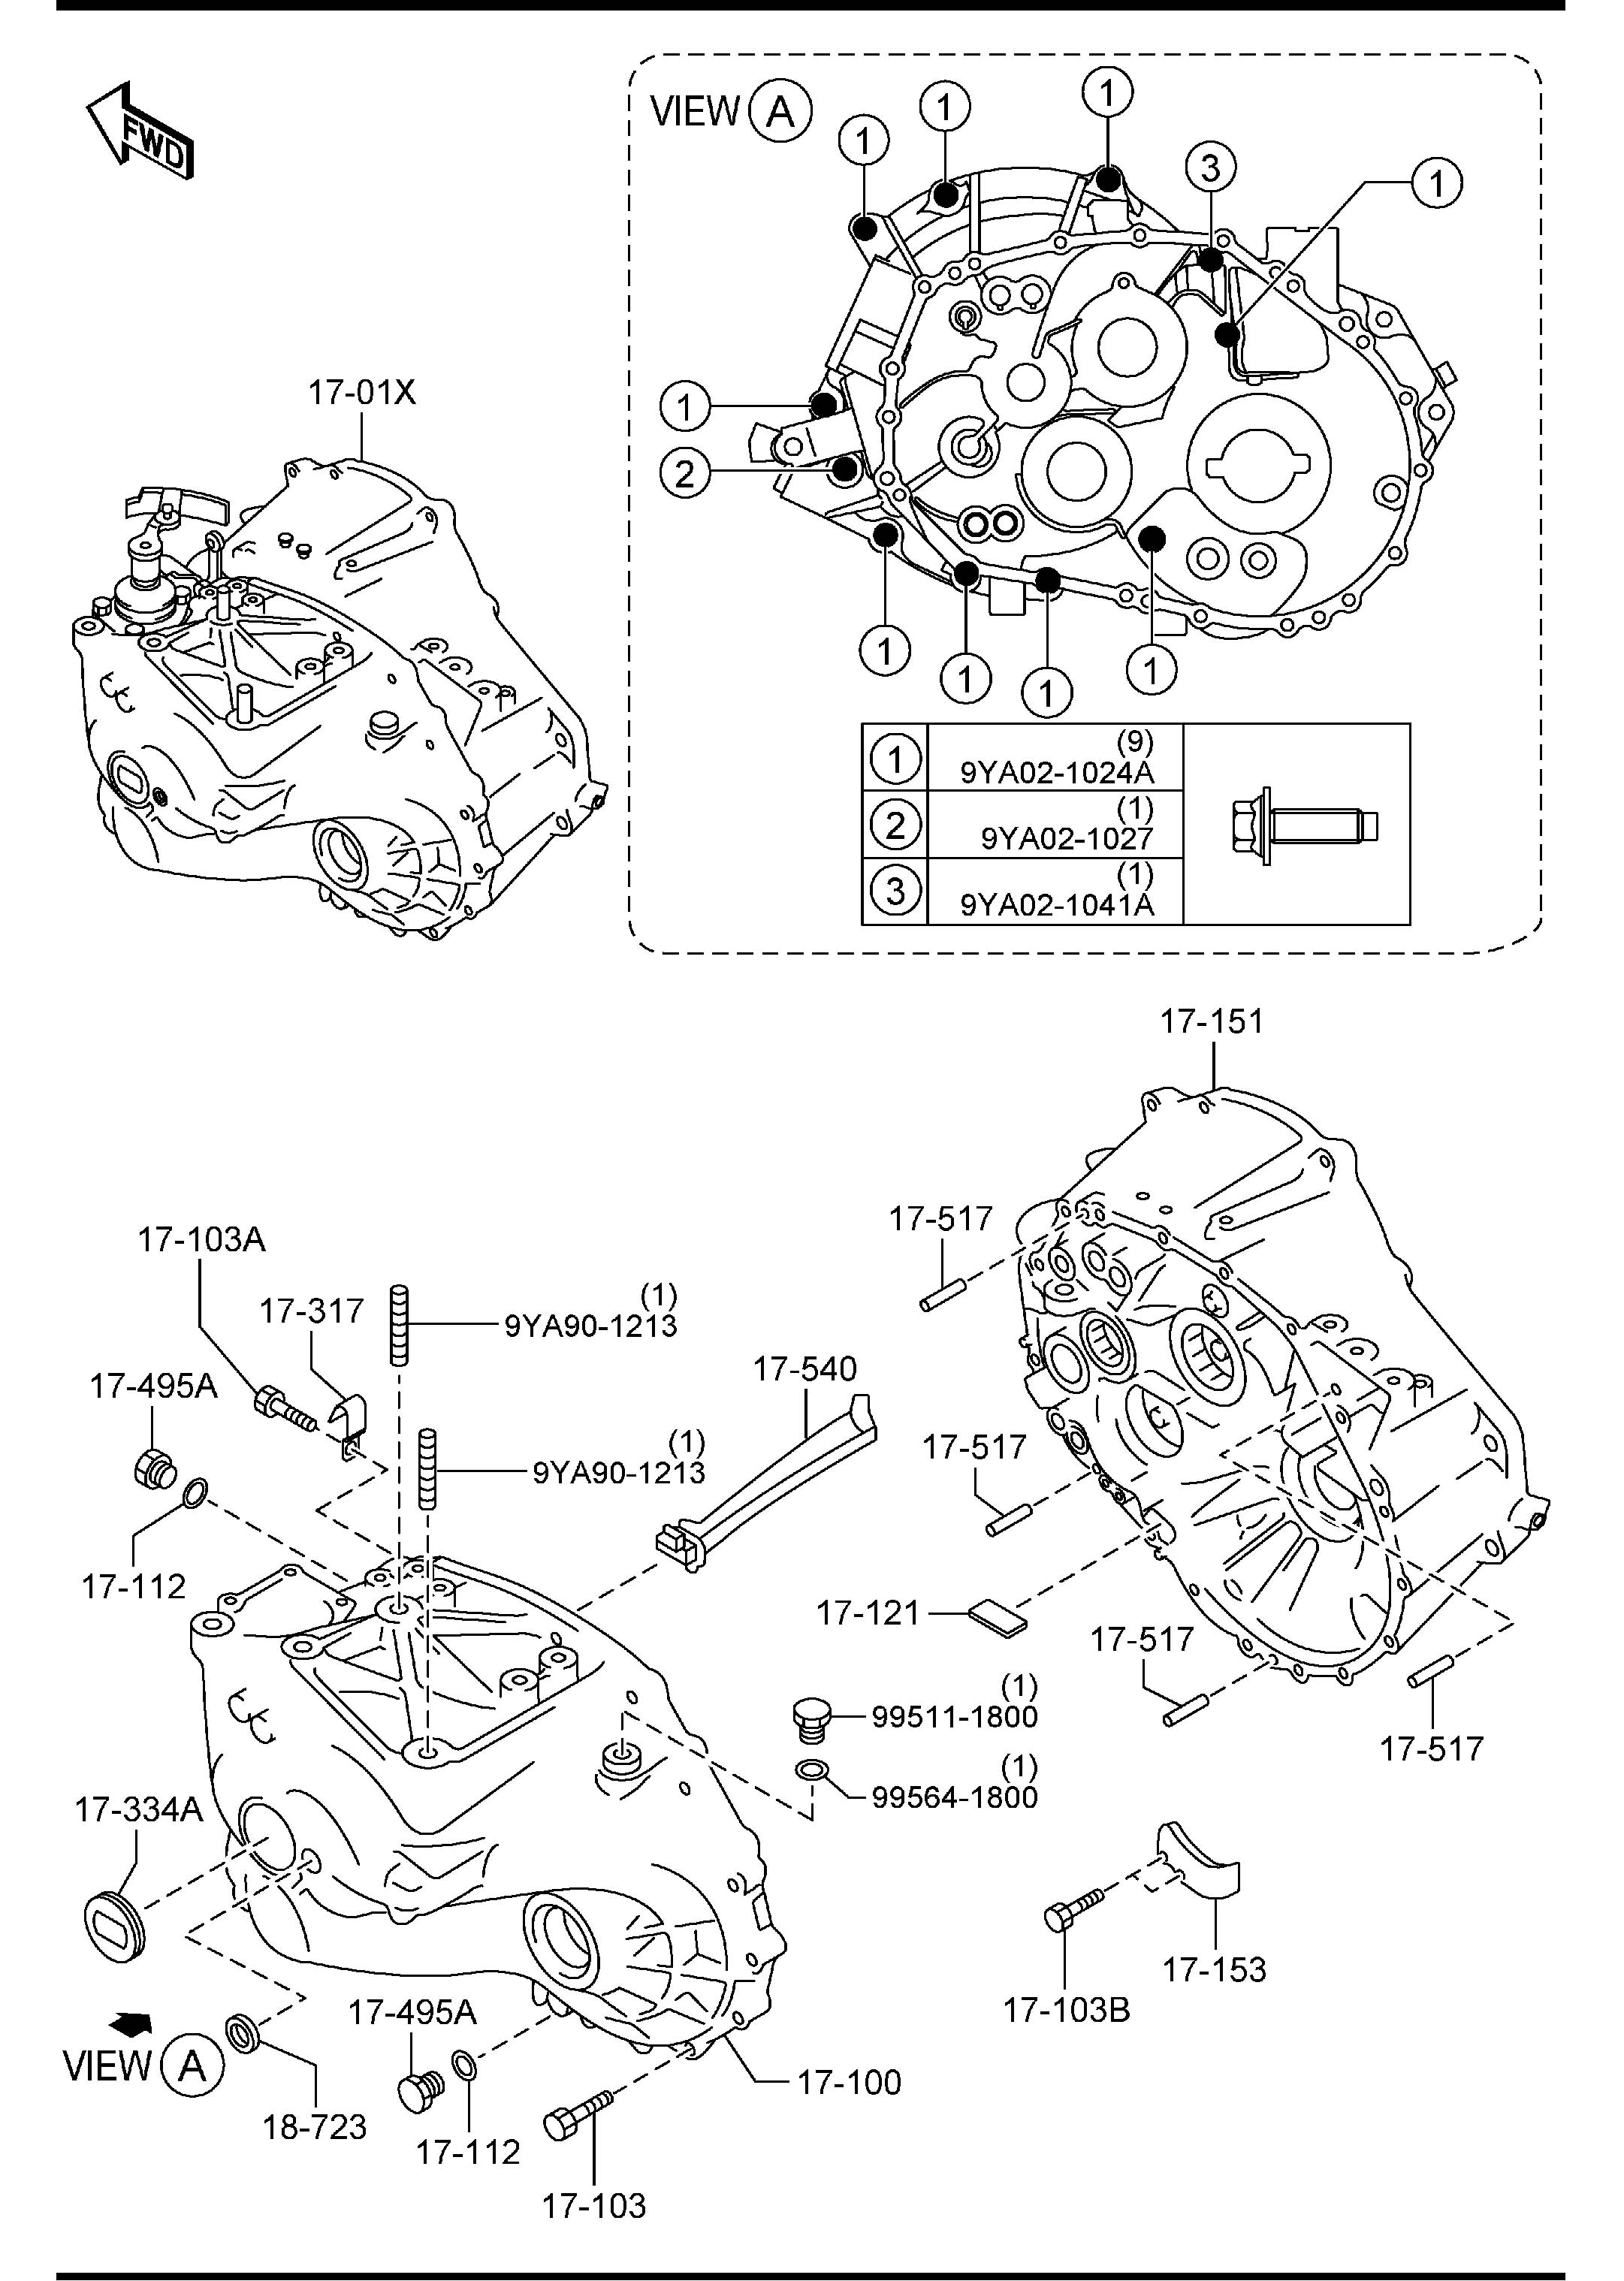 2010 mazda 3 parts diagram sequence for hotel reservation system transmission oil change on ms3 2004 to 2016